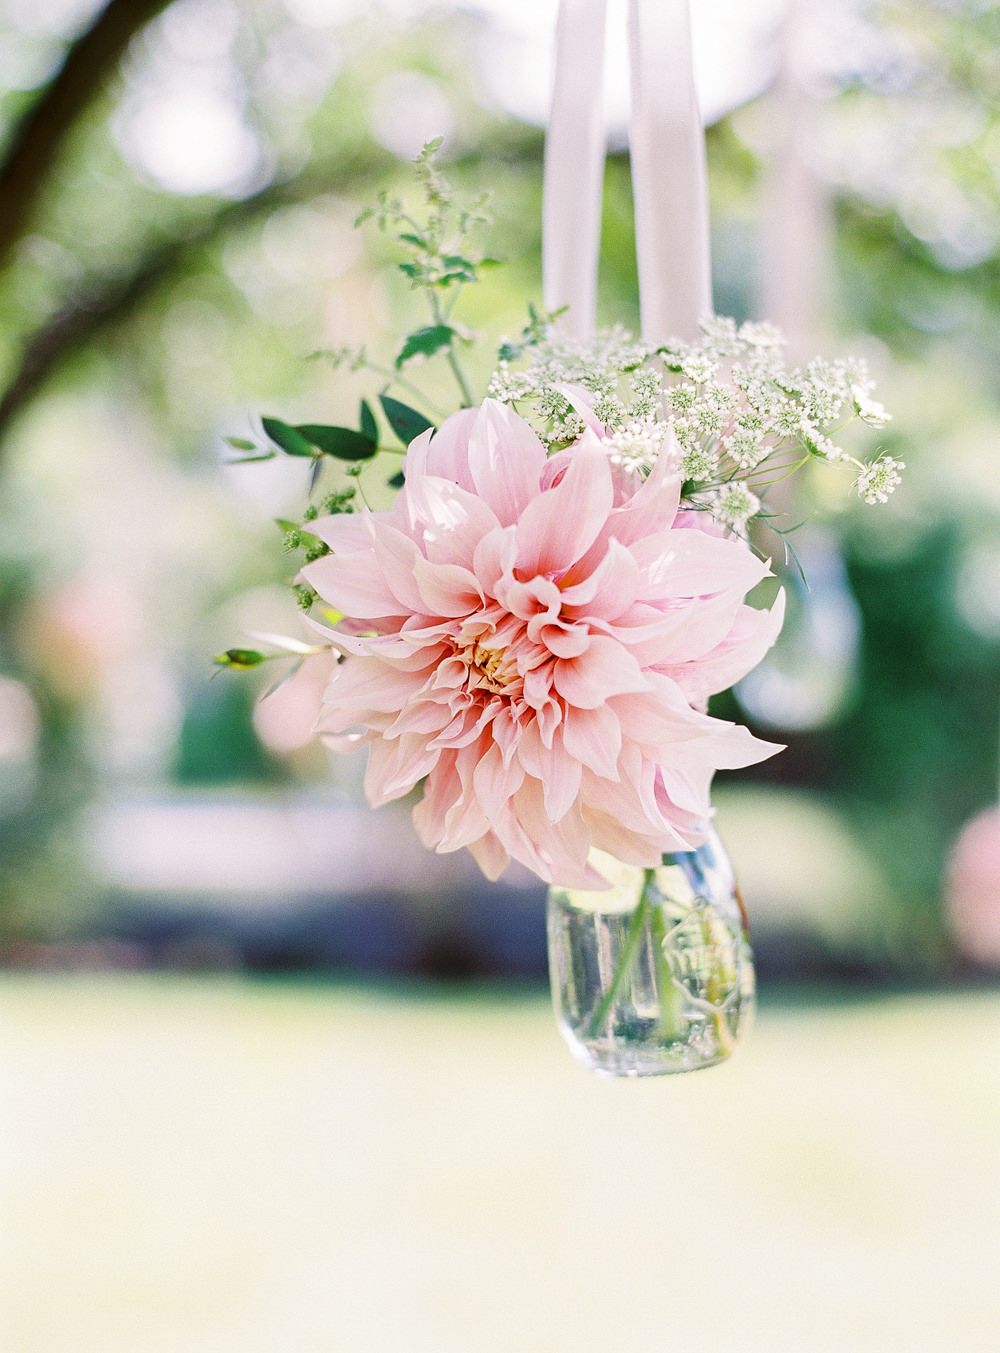 Dahlias suspended in glass vase